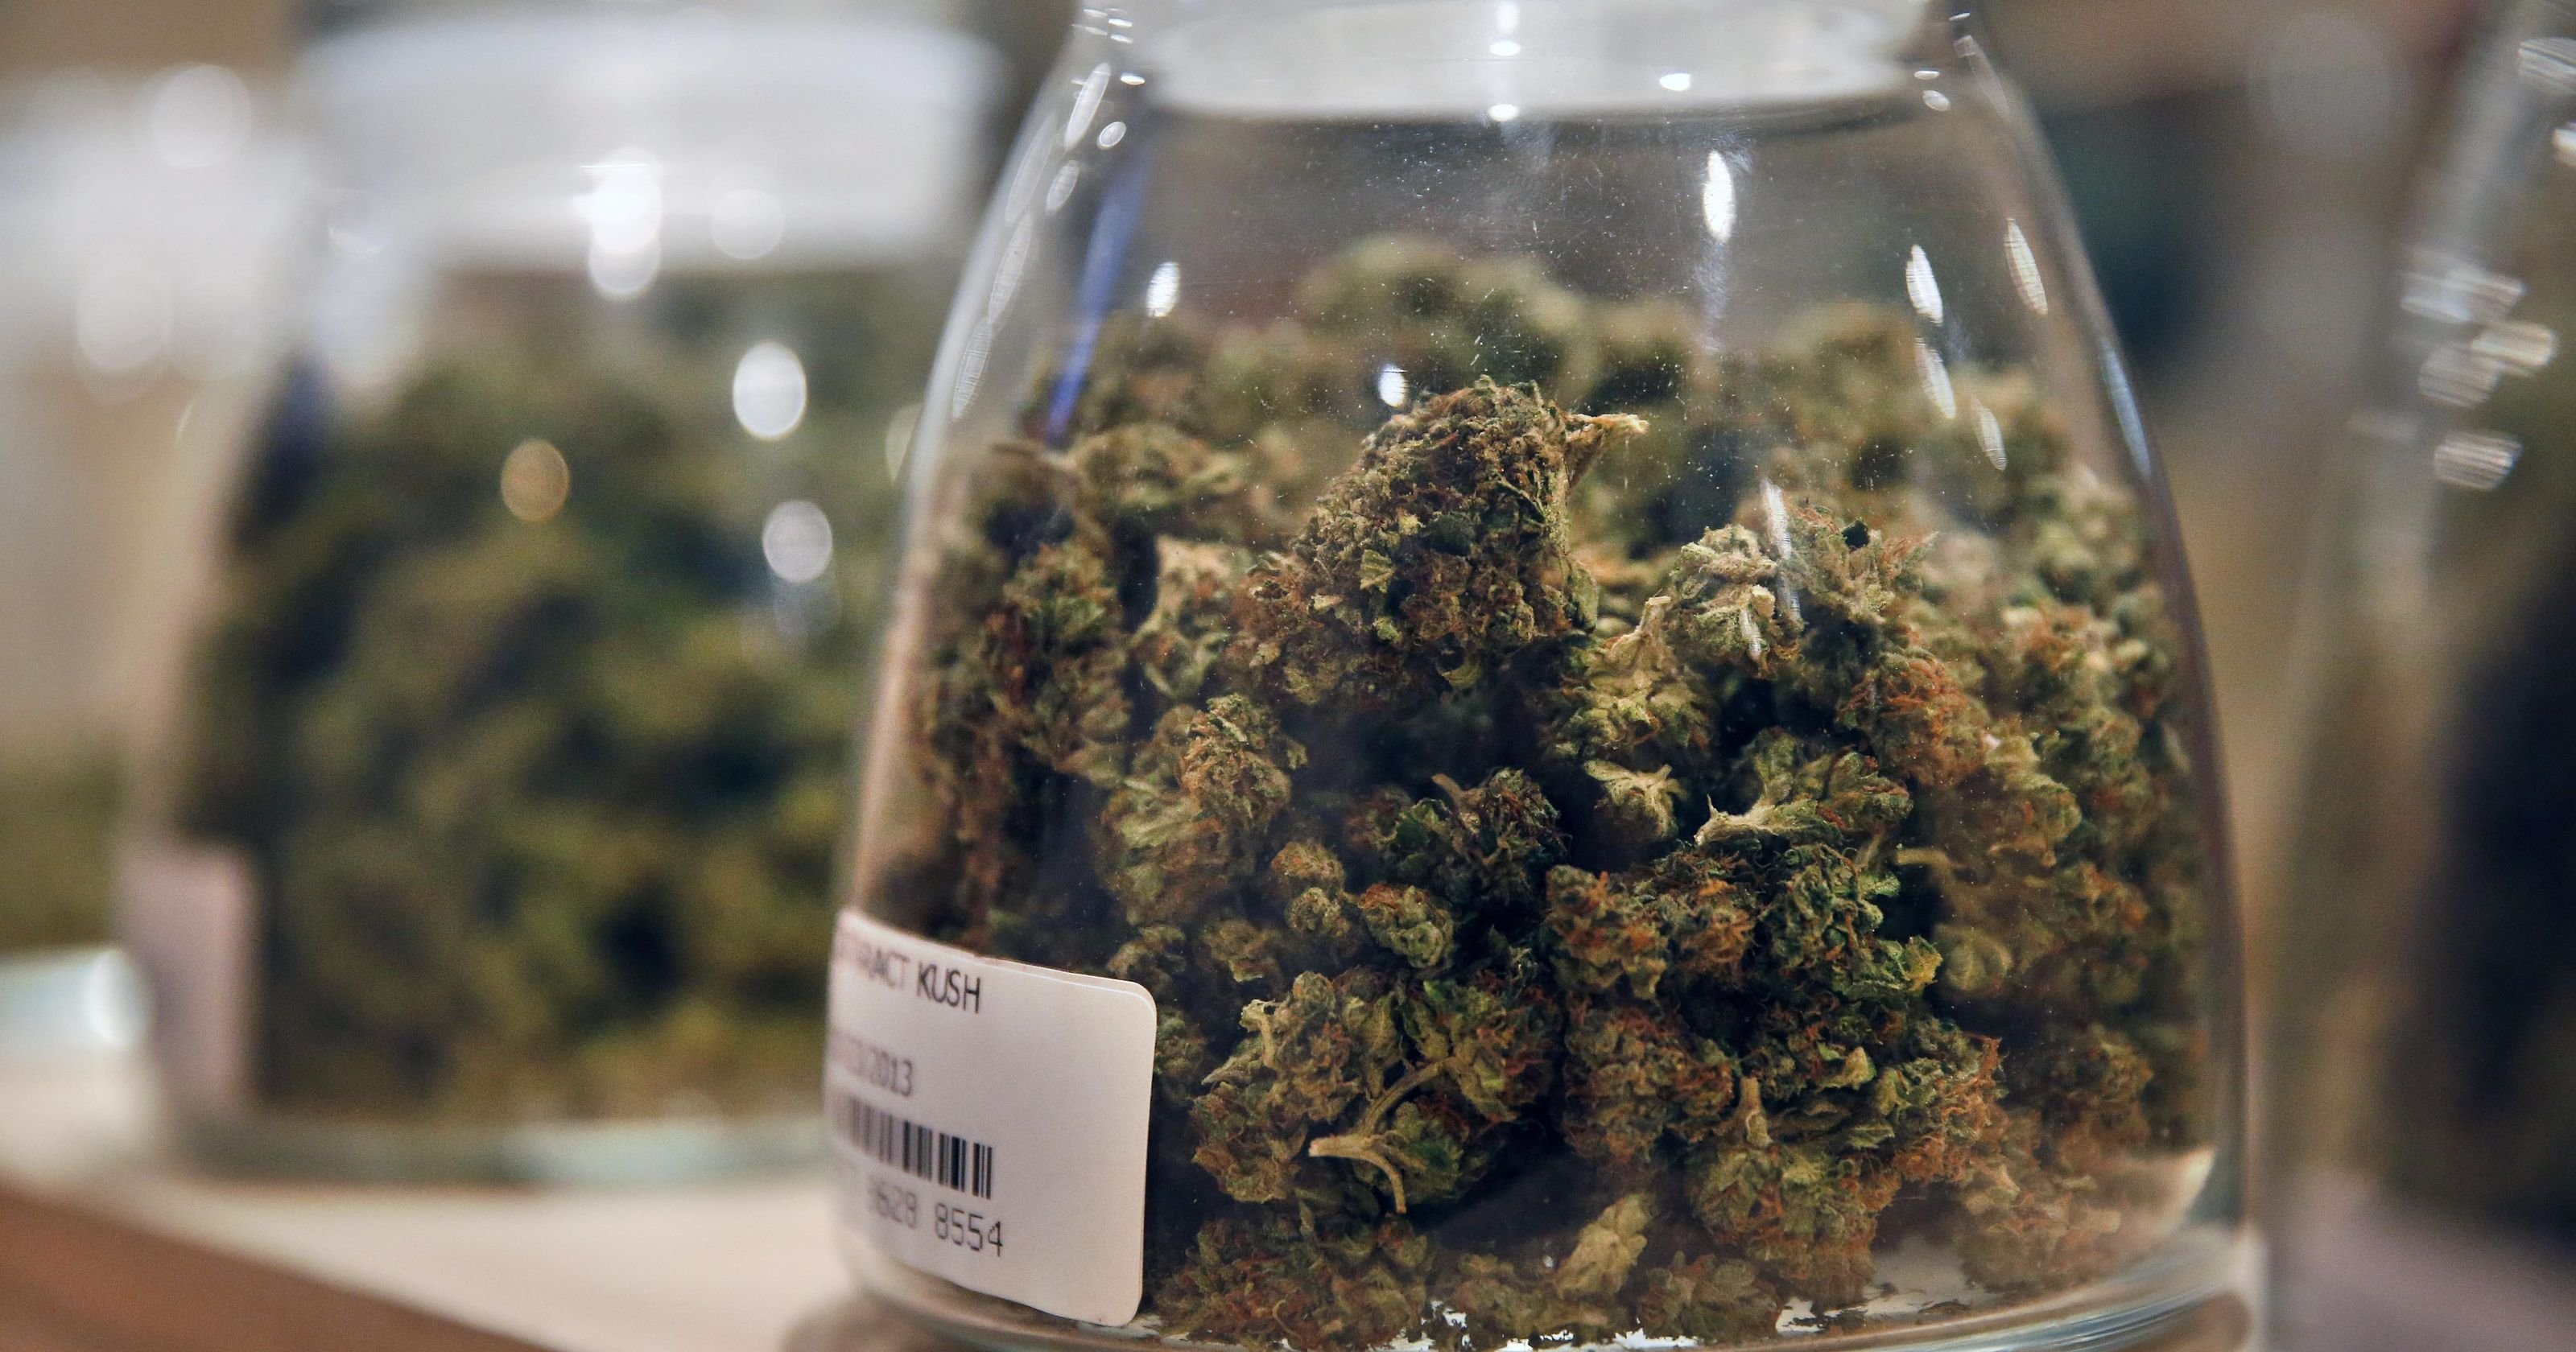 Missouri is likely to have 192 medical-marijuana dispensaries by 2020